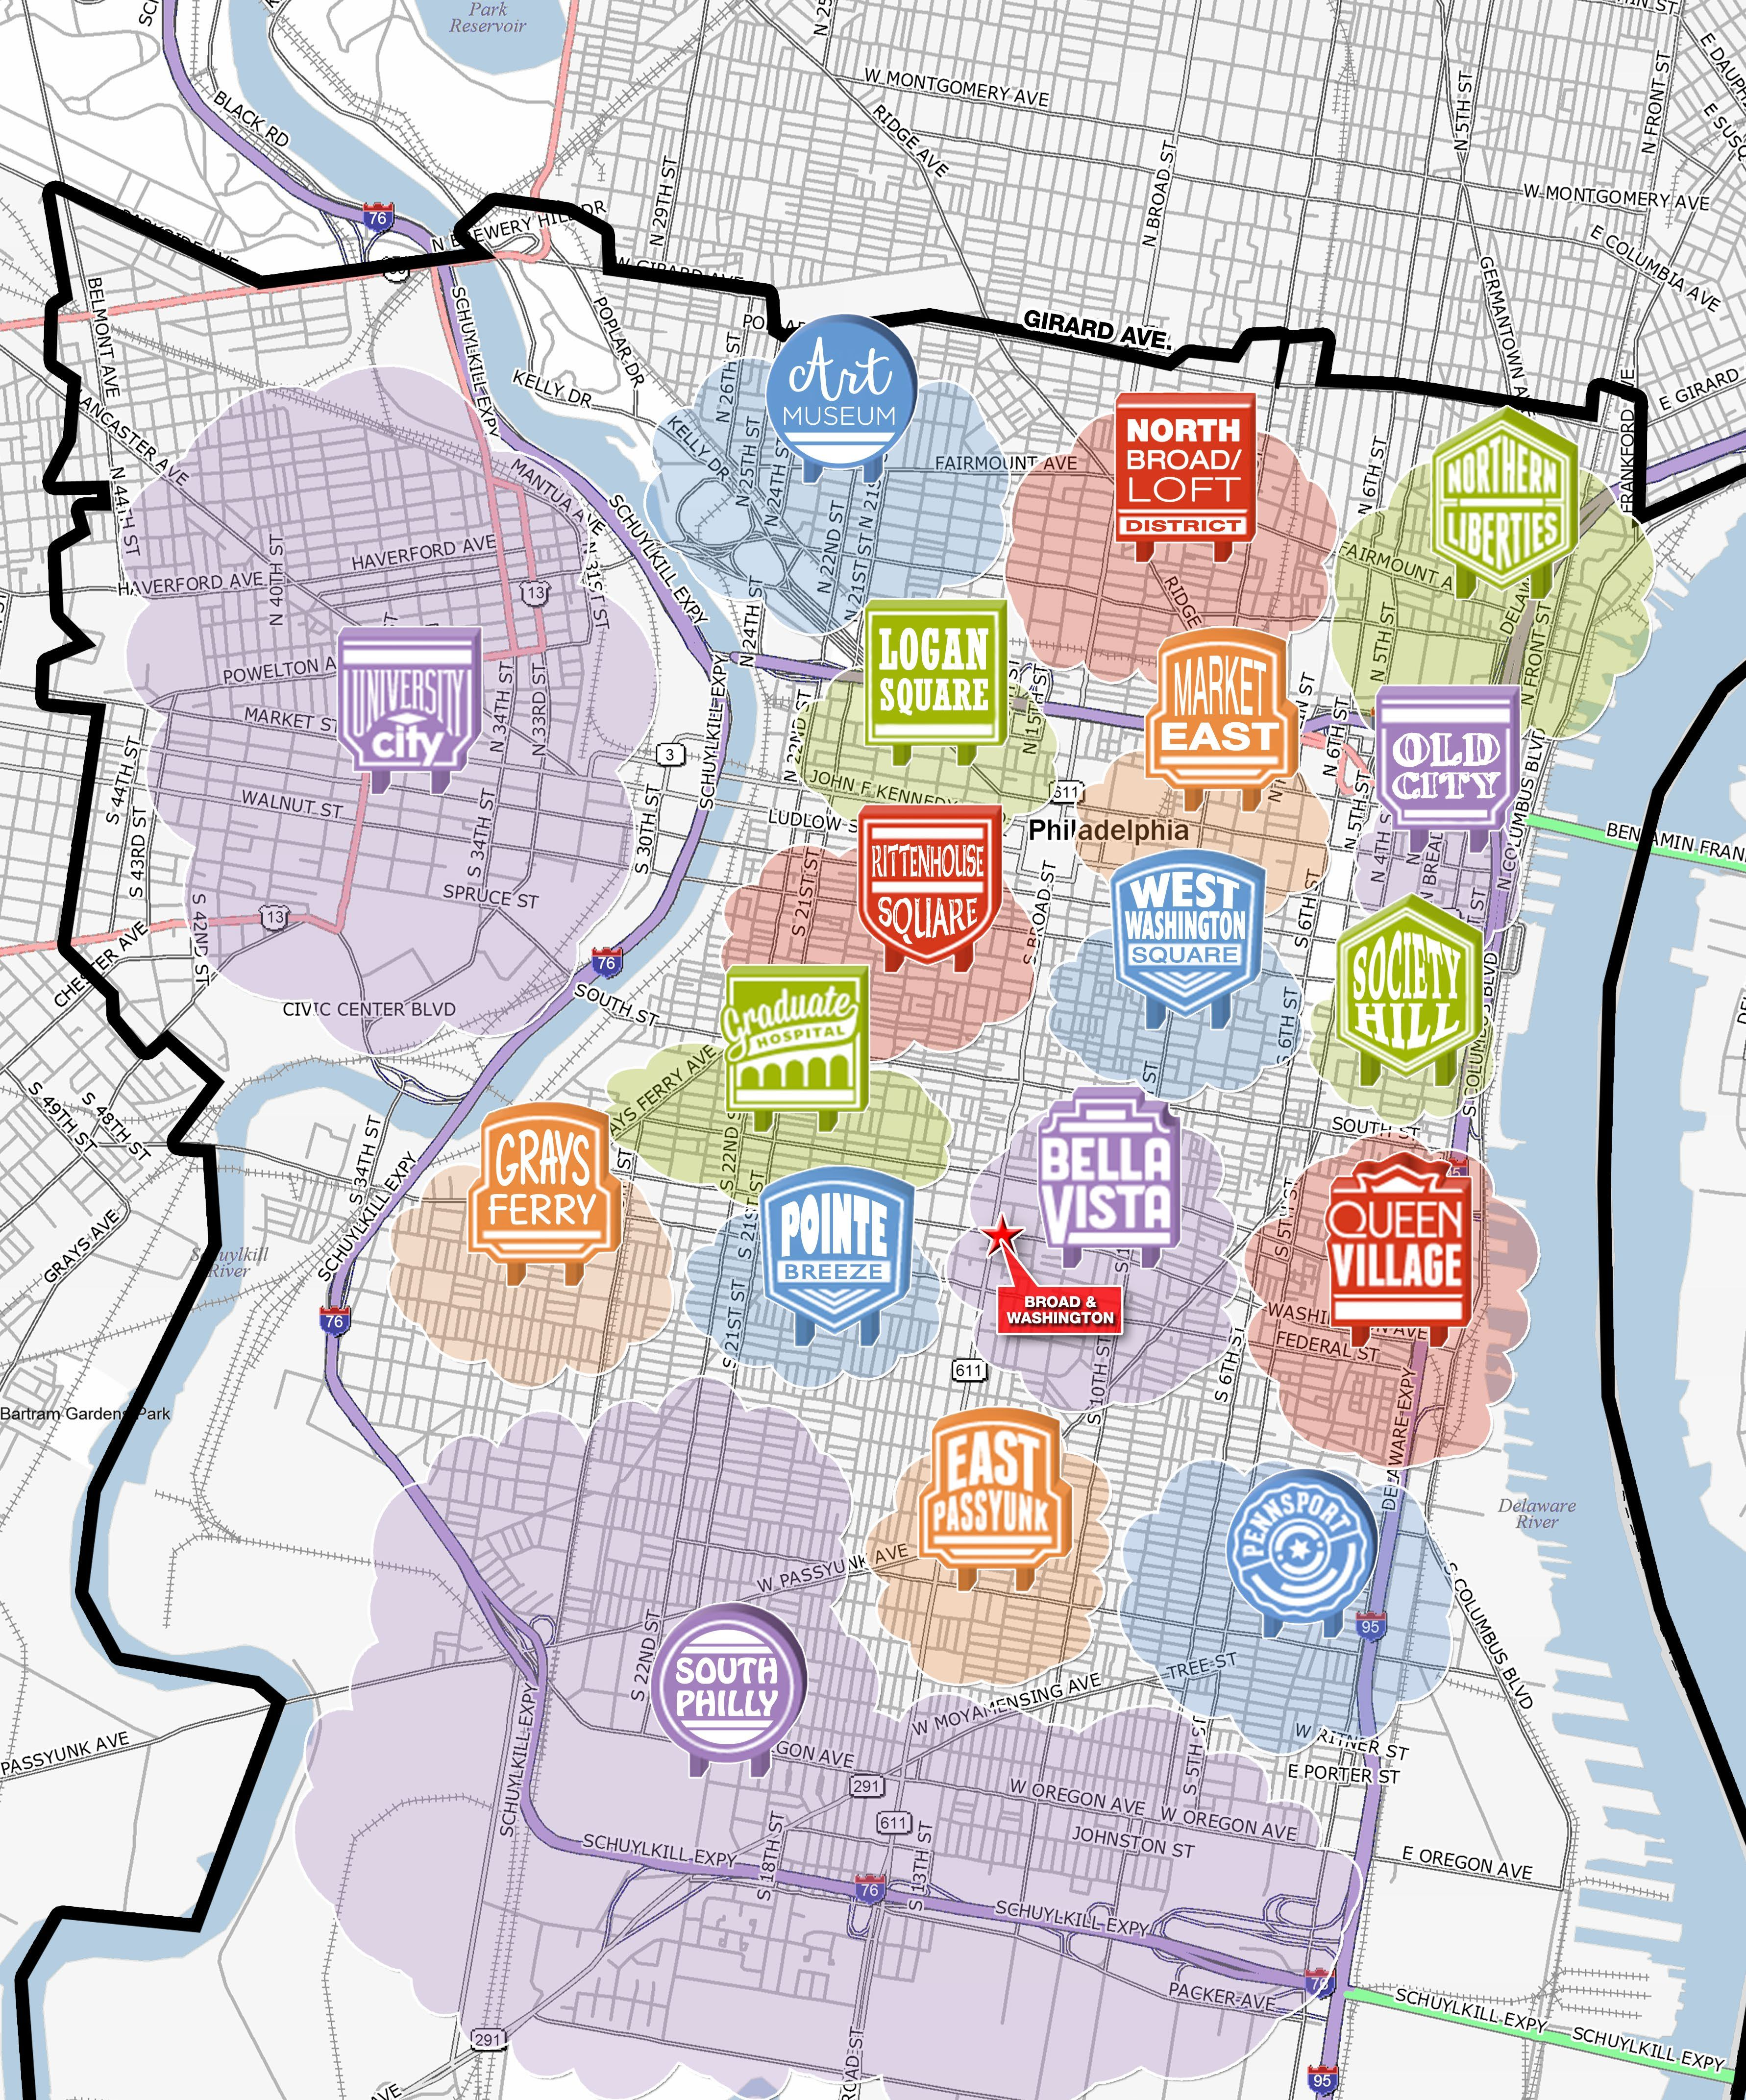 Philadelphia On Map Of Us.A Map Highlighting The Diverse And Distinct Neighborhoods Of Center